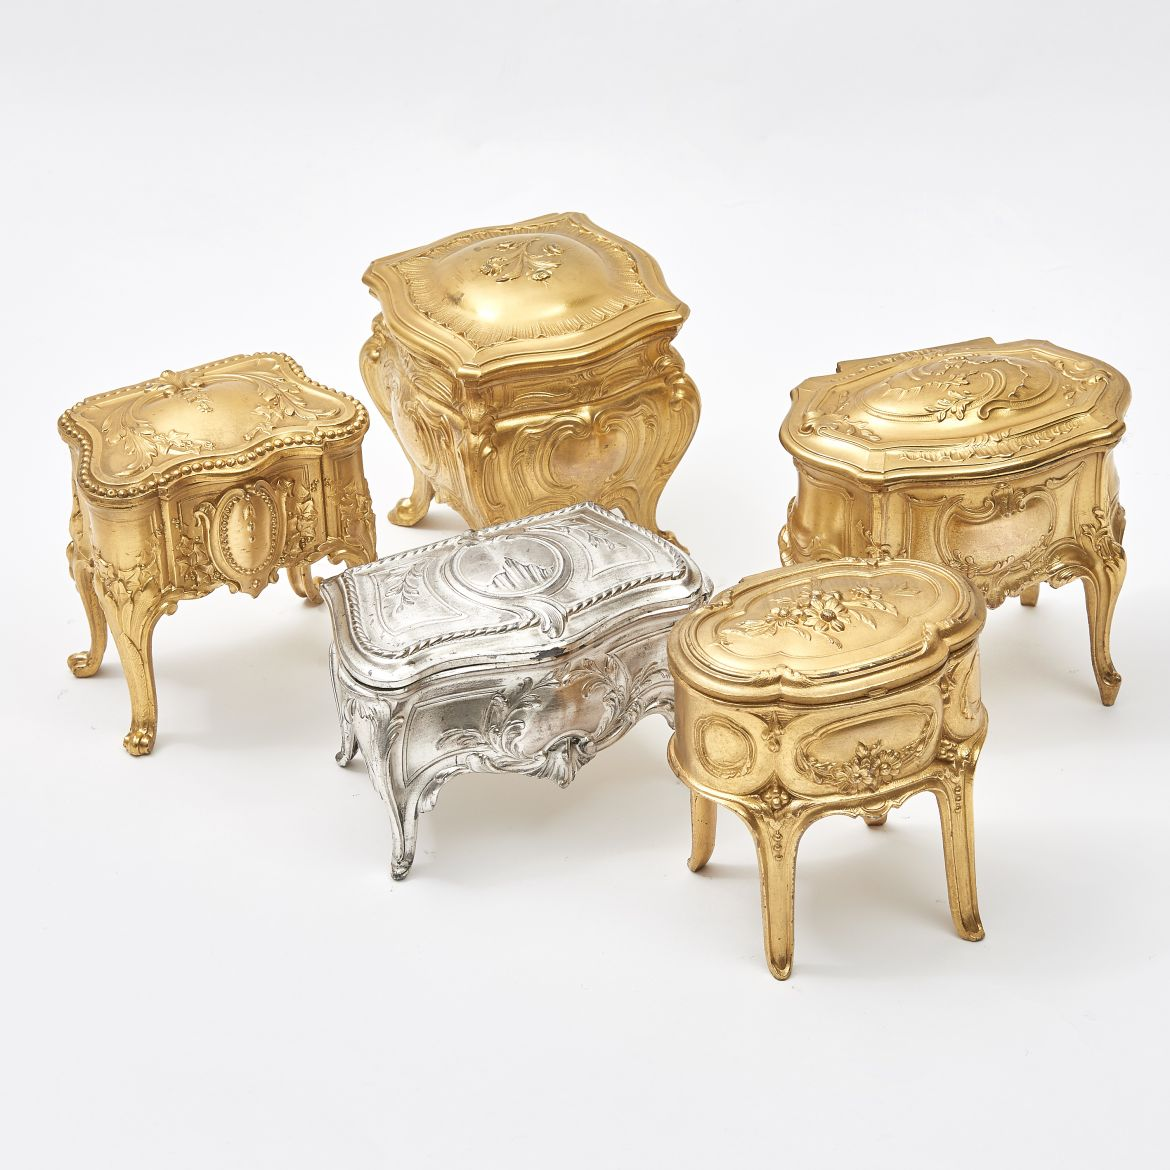 Collection of Miniature Commode Jewellery Boxes